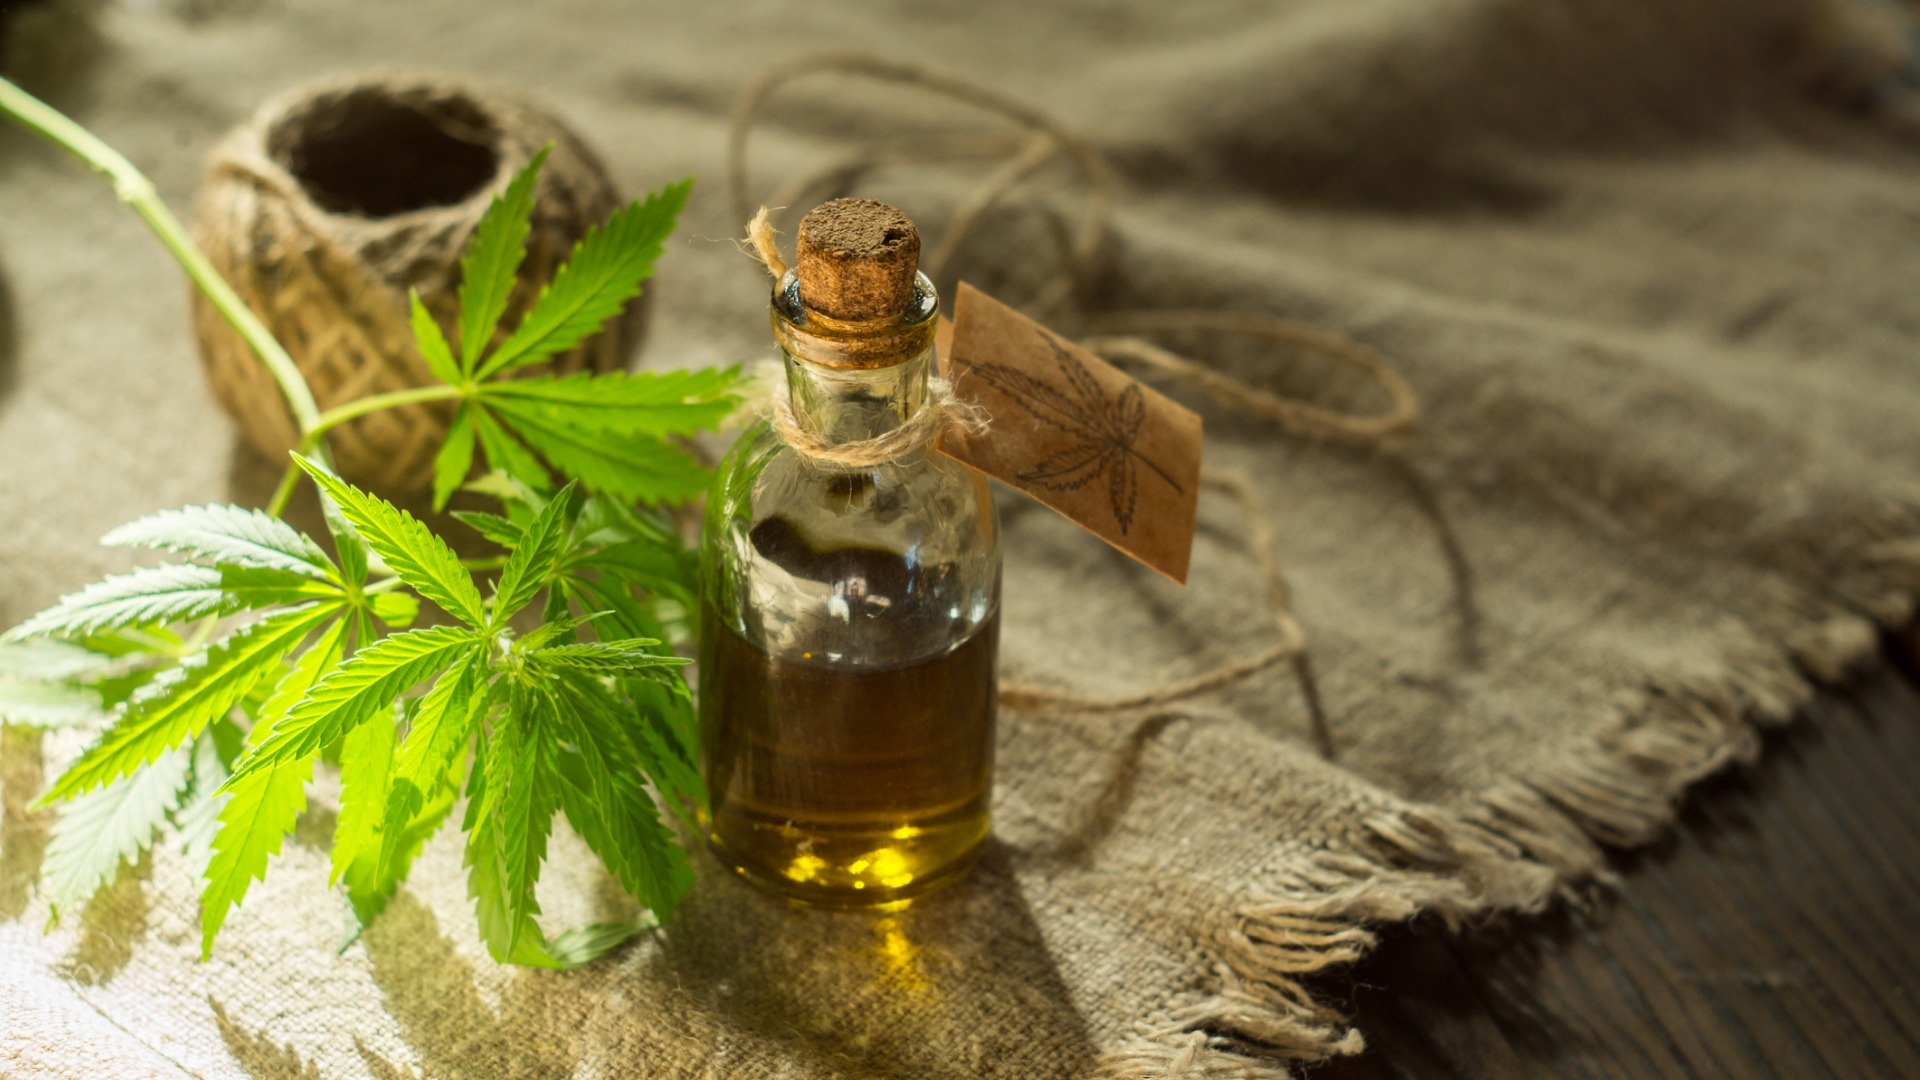 weed tincture on woven table cloth.